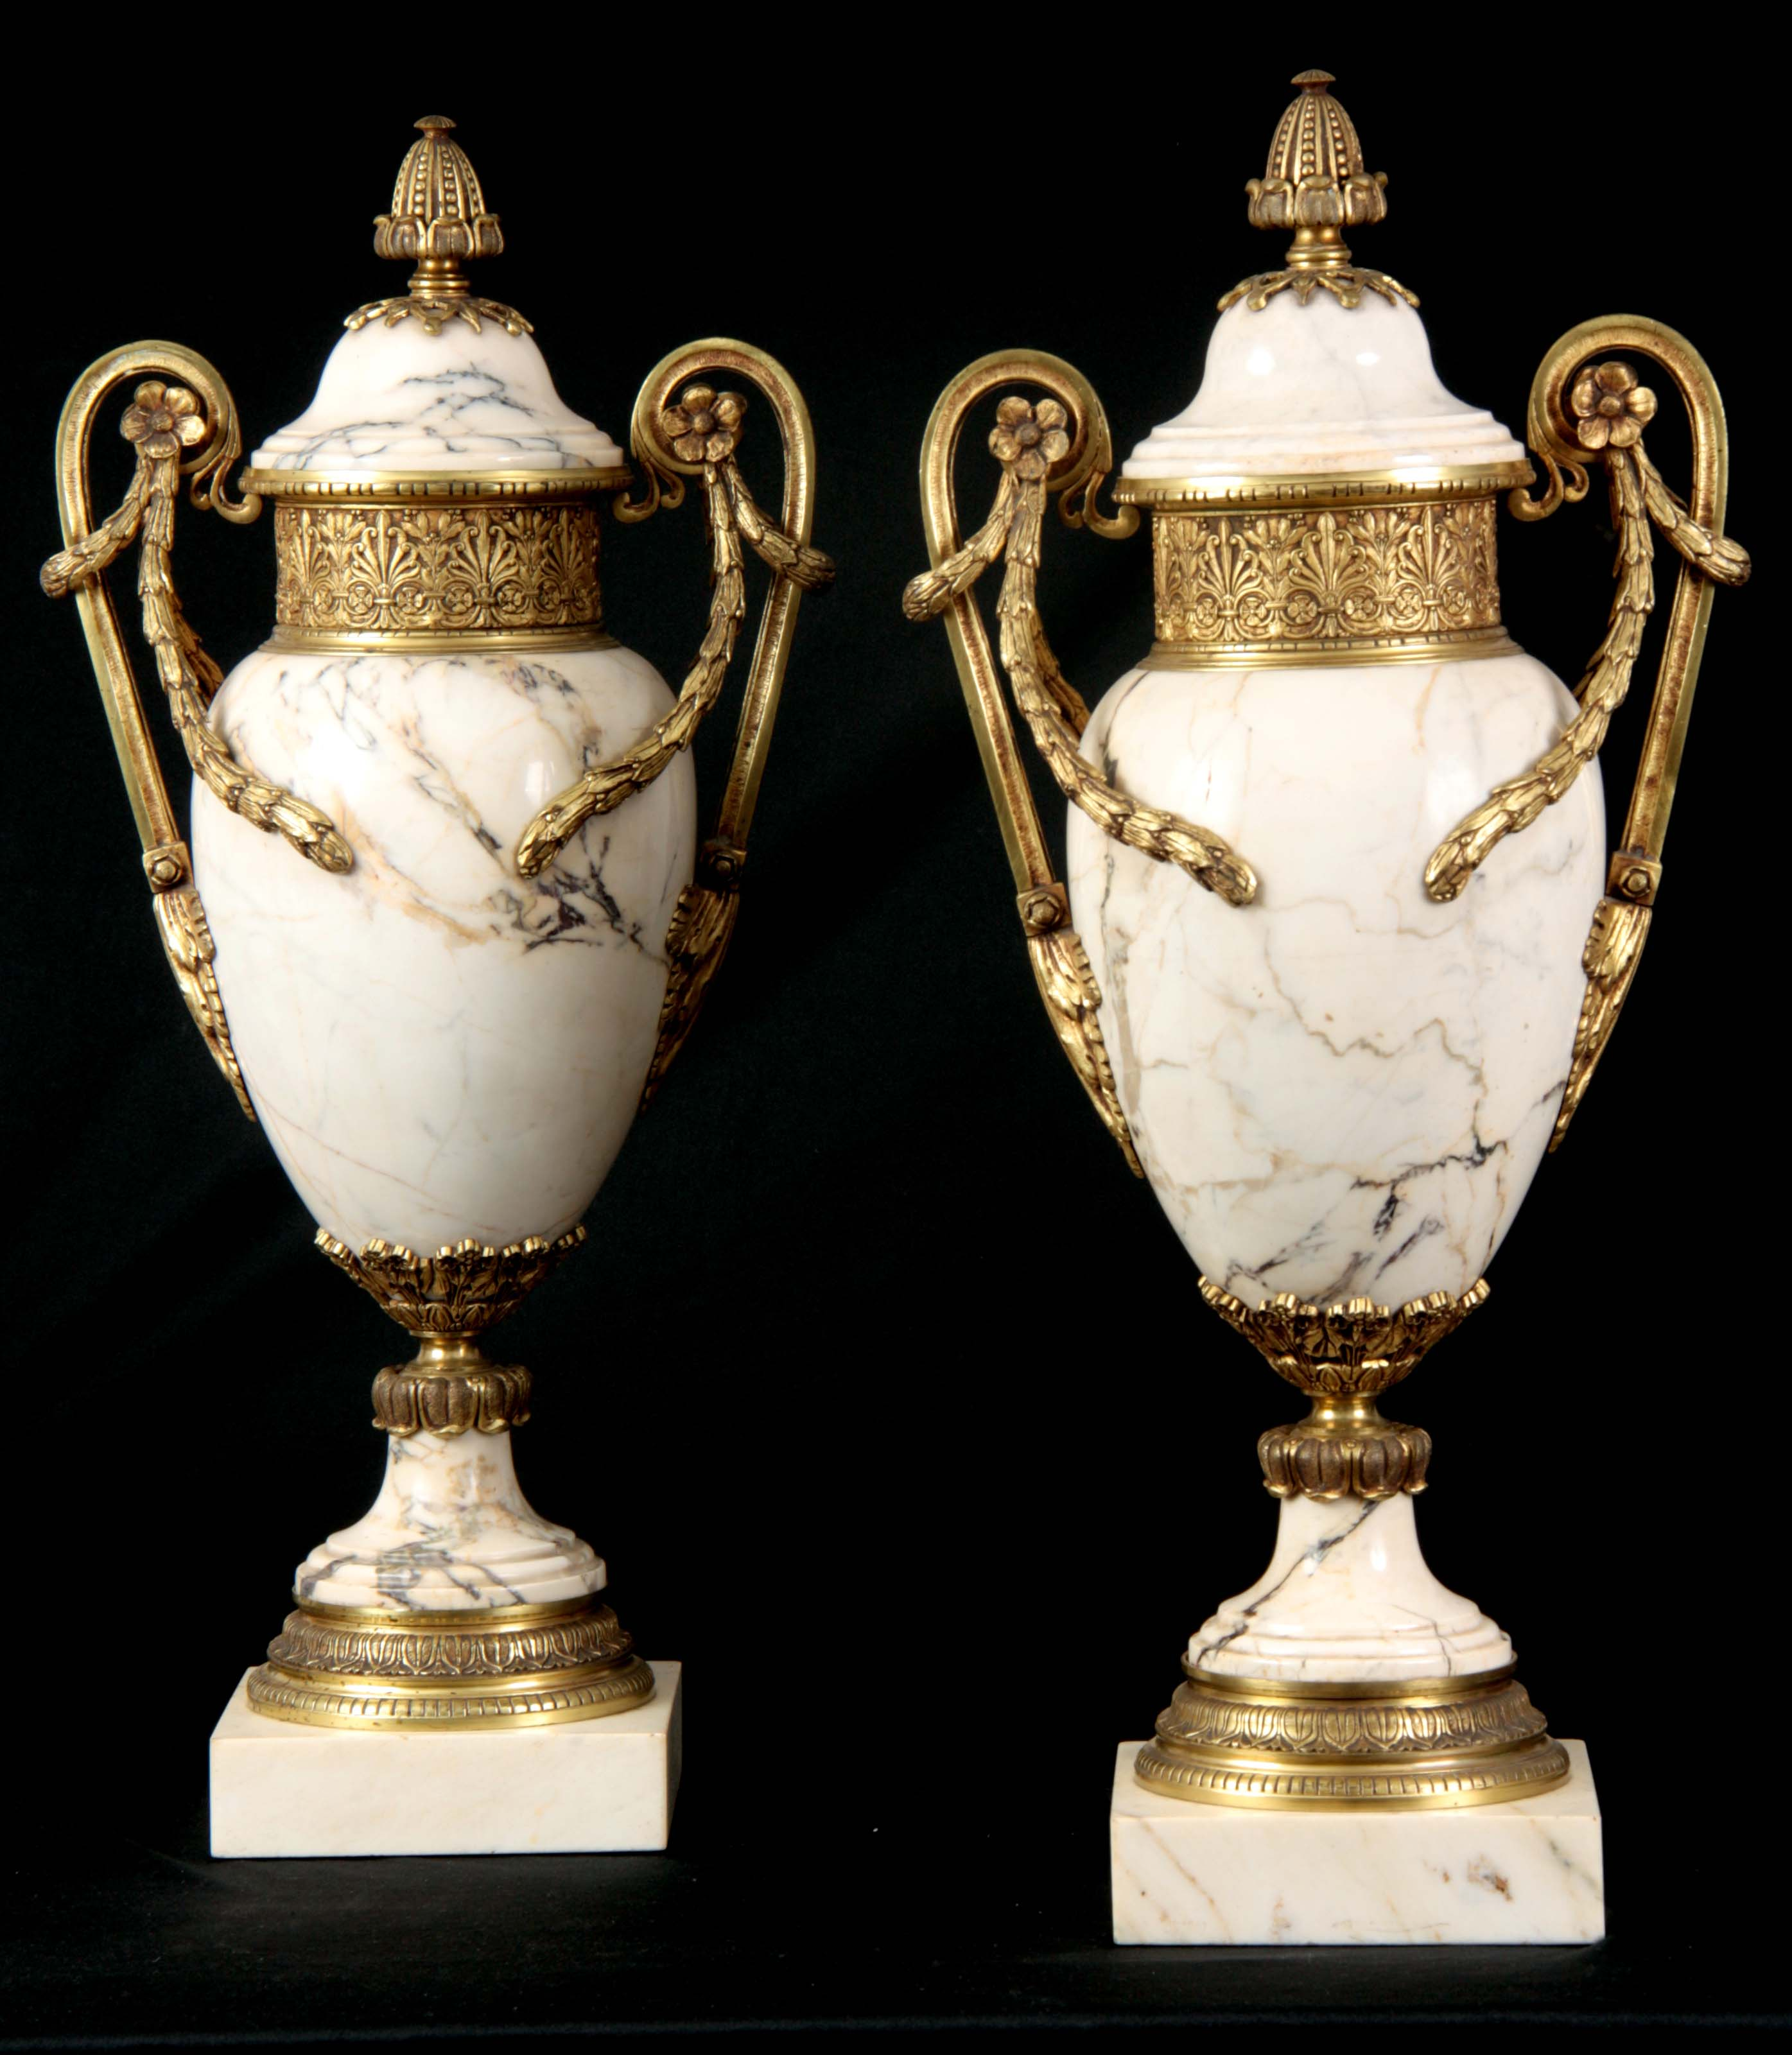 AN IMPRESSIVE PAIR OF FRENCH ORMOLU MOUNTED VEINED WHITE MARBLE CASOLETTES with floral swag work